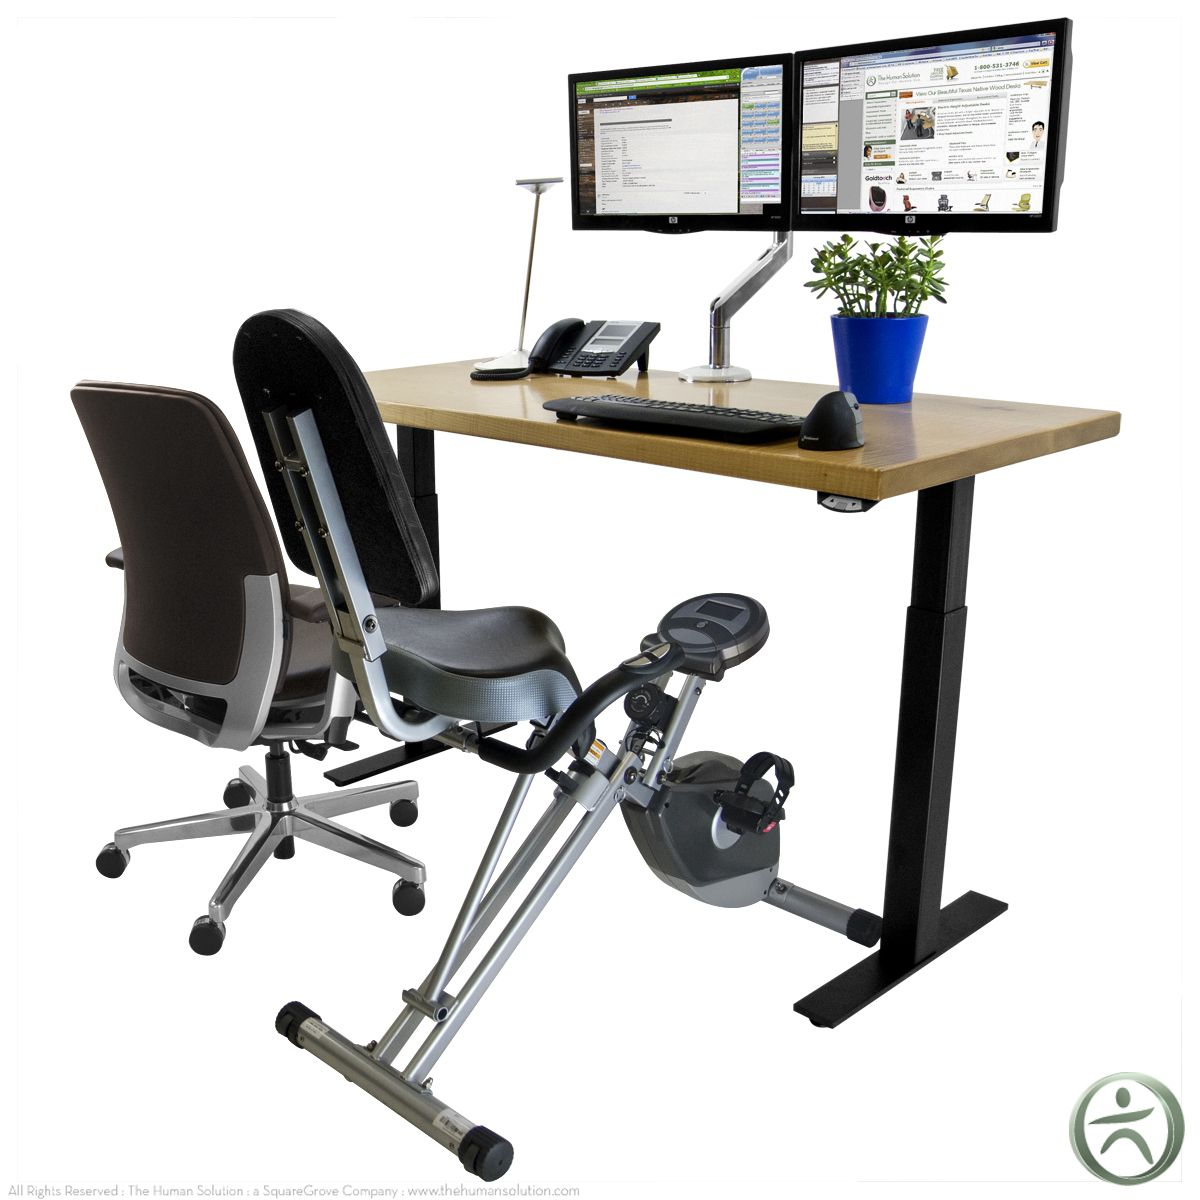 The Uplift Bike Desk Offers Users A Safe And Easy Solution For Staying Fit At The Workplace Go With A Recumbent Bike Or A Spi Desk Desk Workout Biking Workout